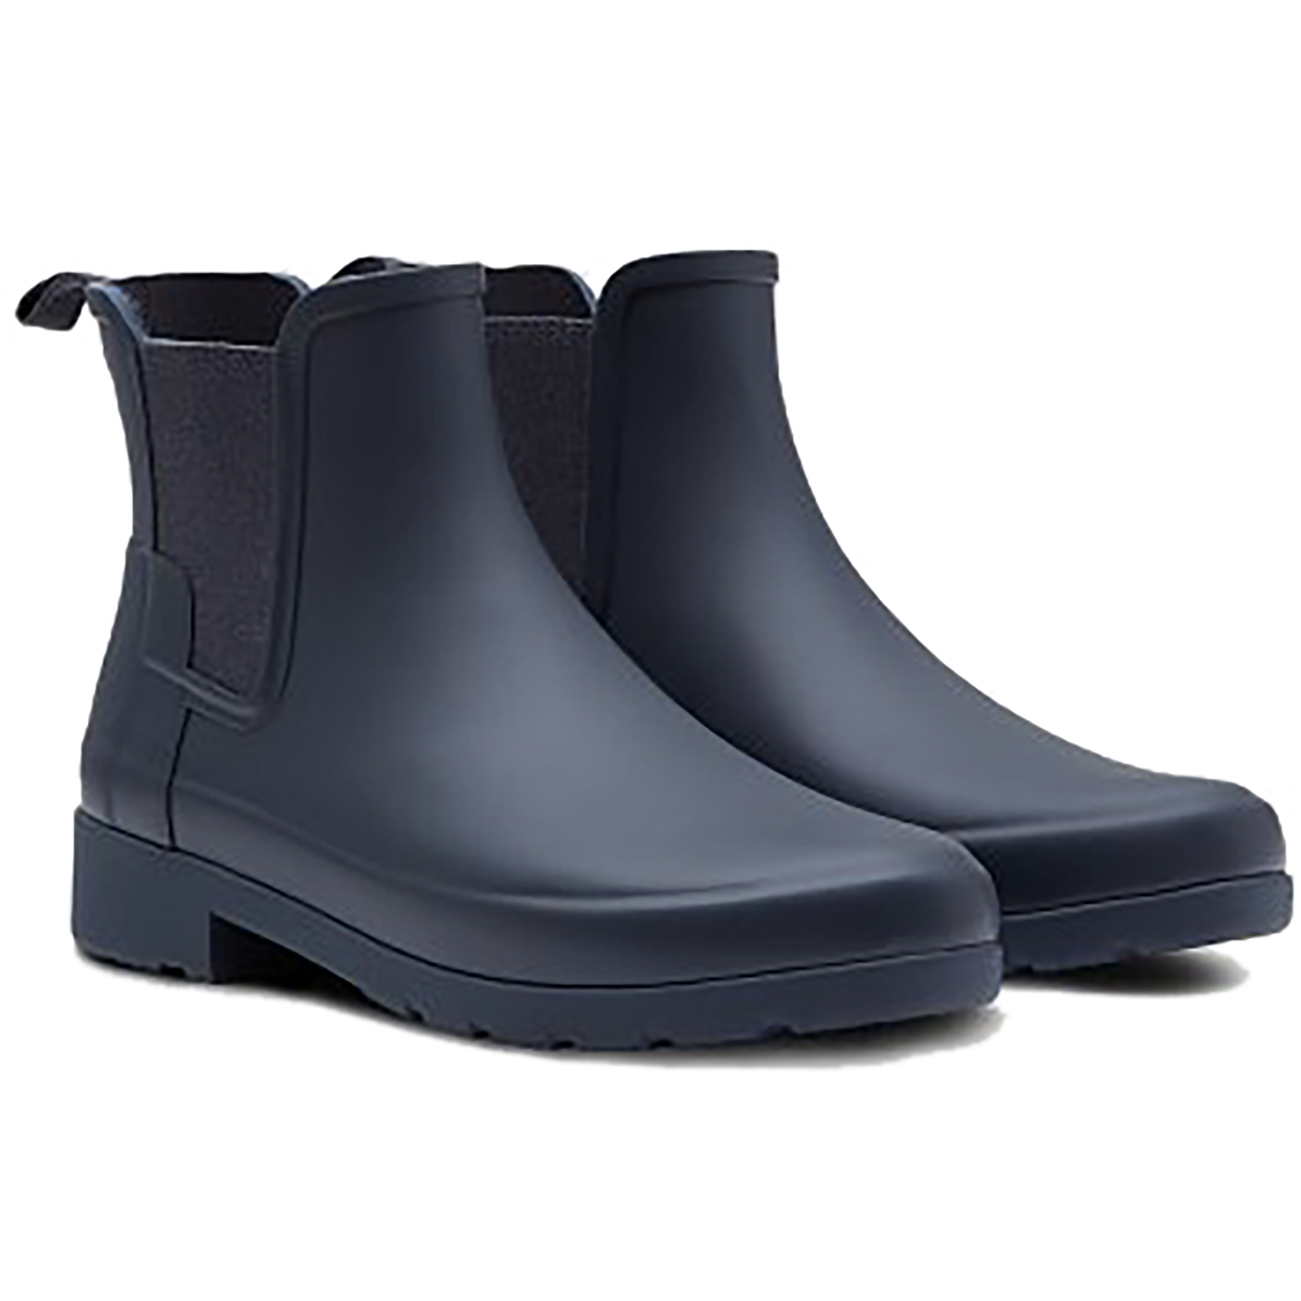 a6f57ce3250b Hunter Original Refined Chelsea Short Rain BOOTS 235 Black 8 US   39 ...